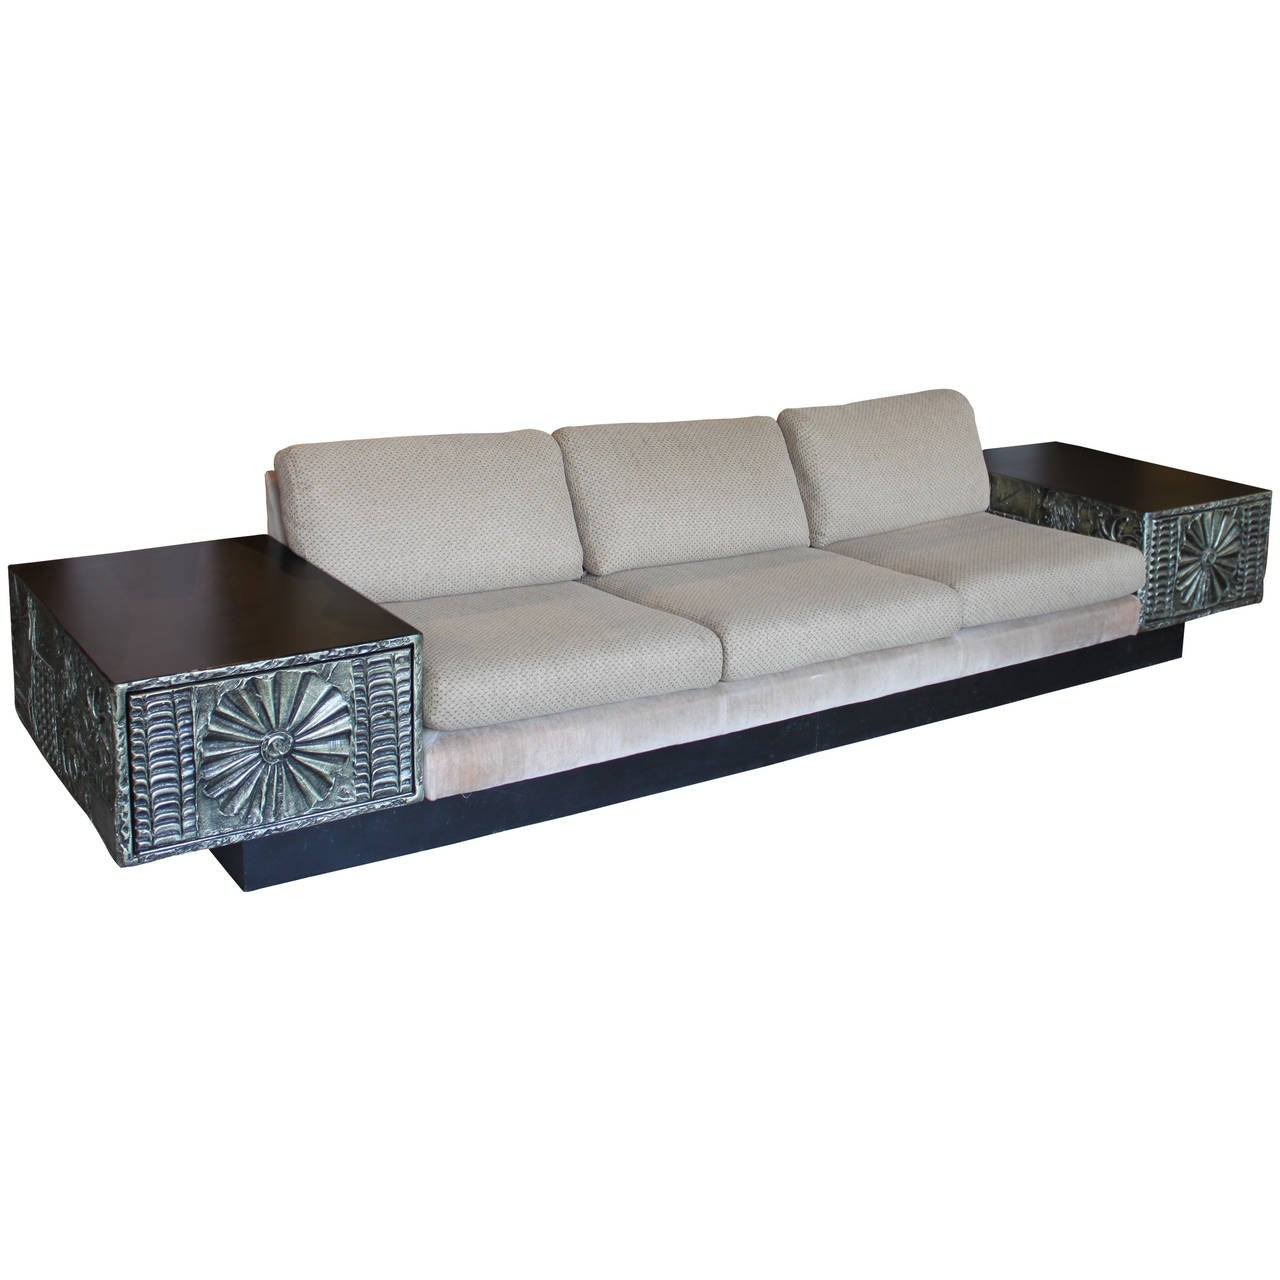 Adrian Pearsall Sofas 64 For Sale at 1stdibs